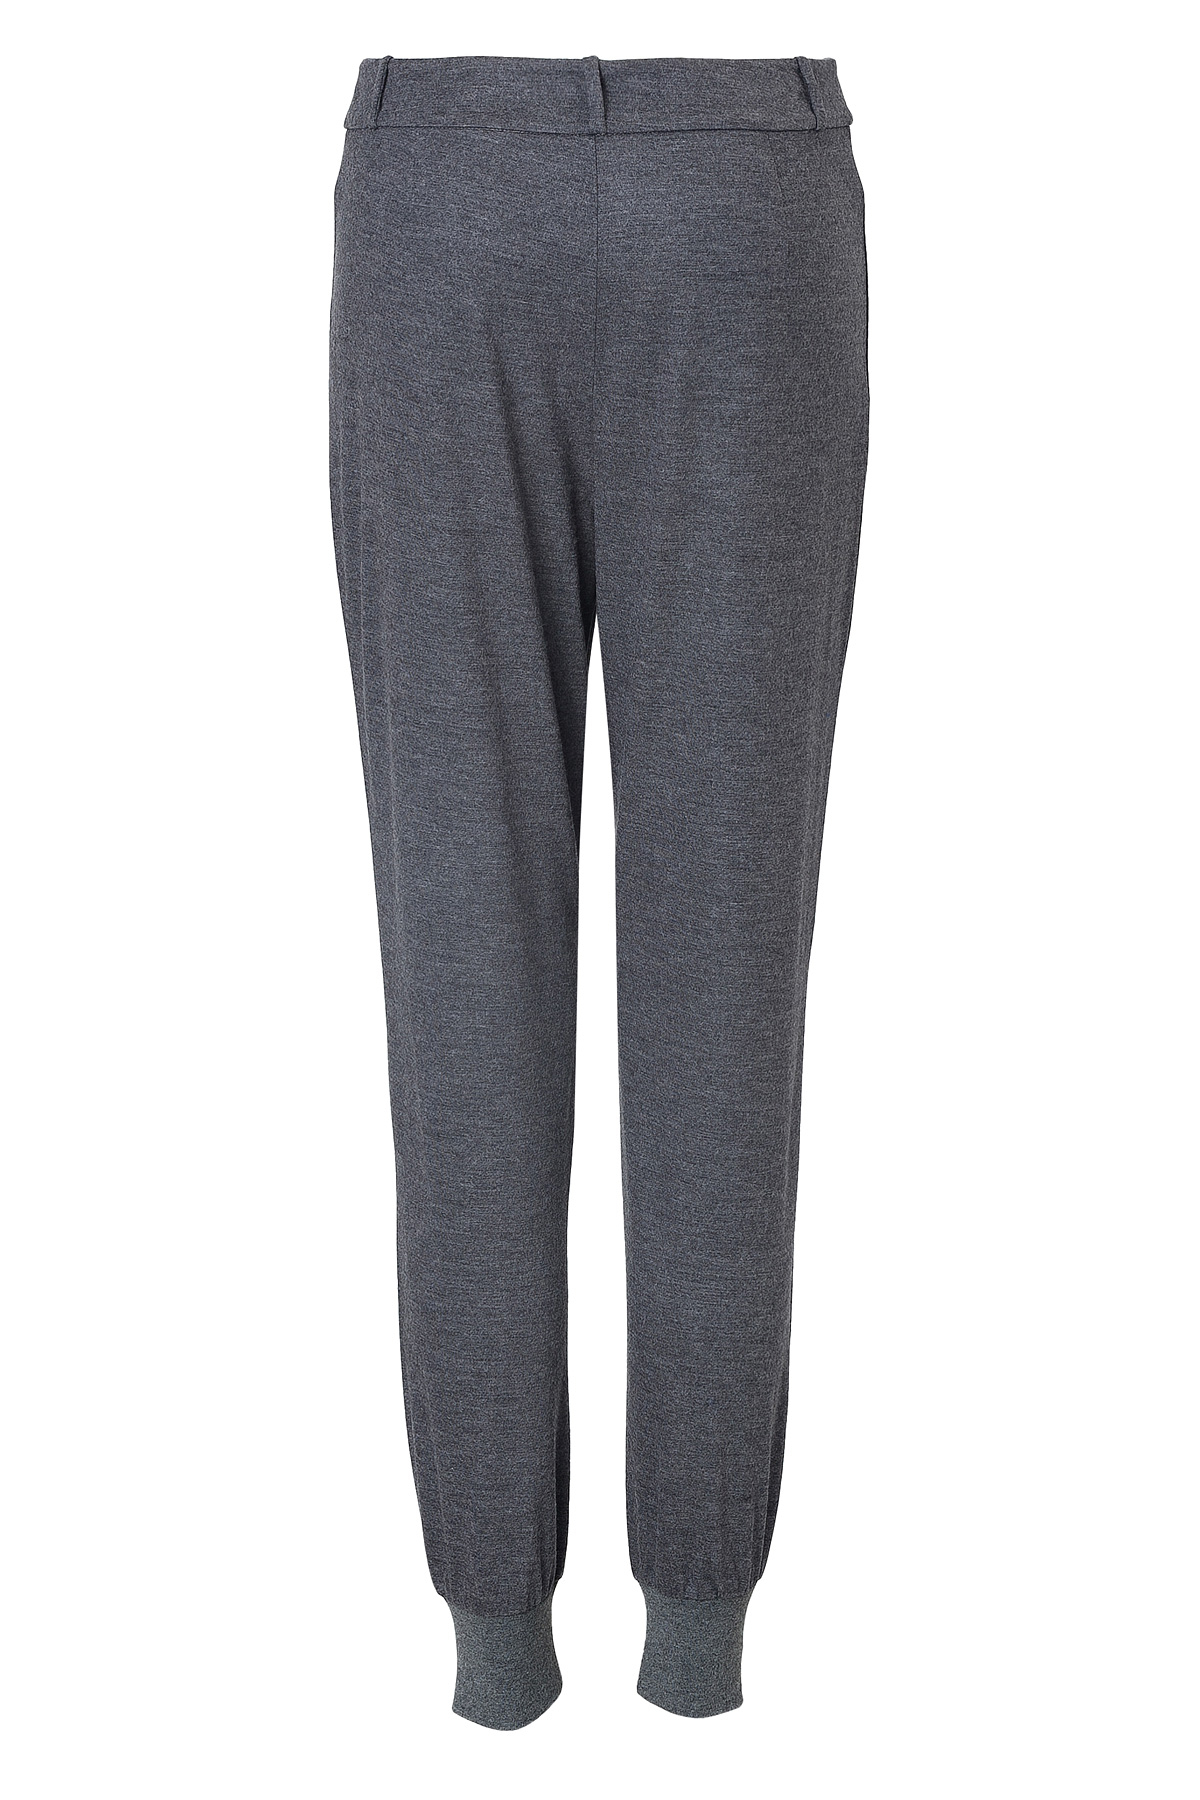 10 Tailored Jogging Pants Under $ Don't go broke snagging the biggest trend in men's pants this year.